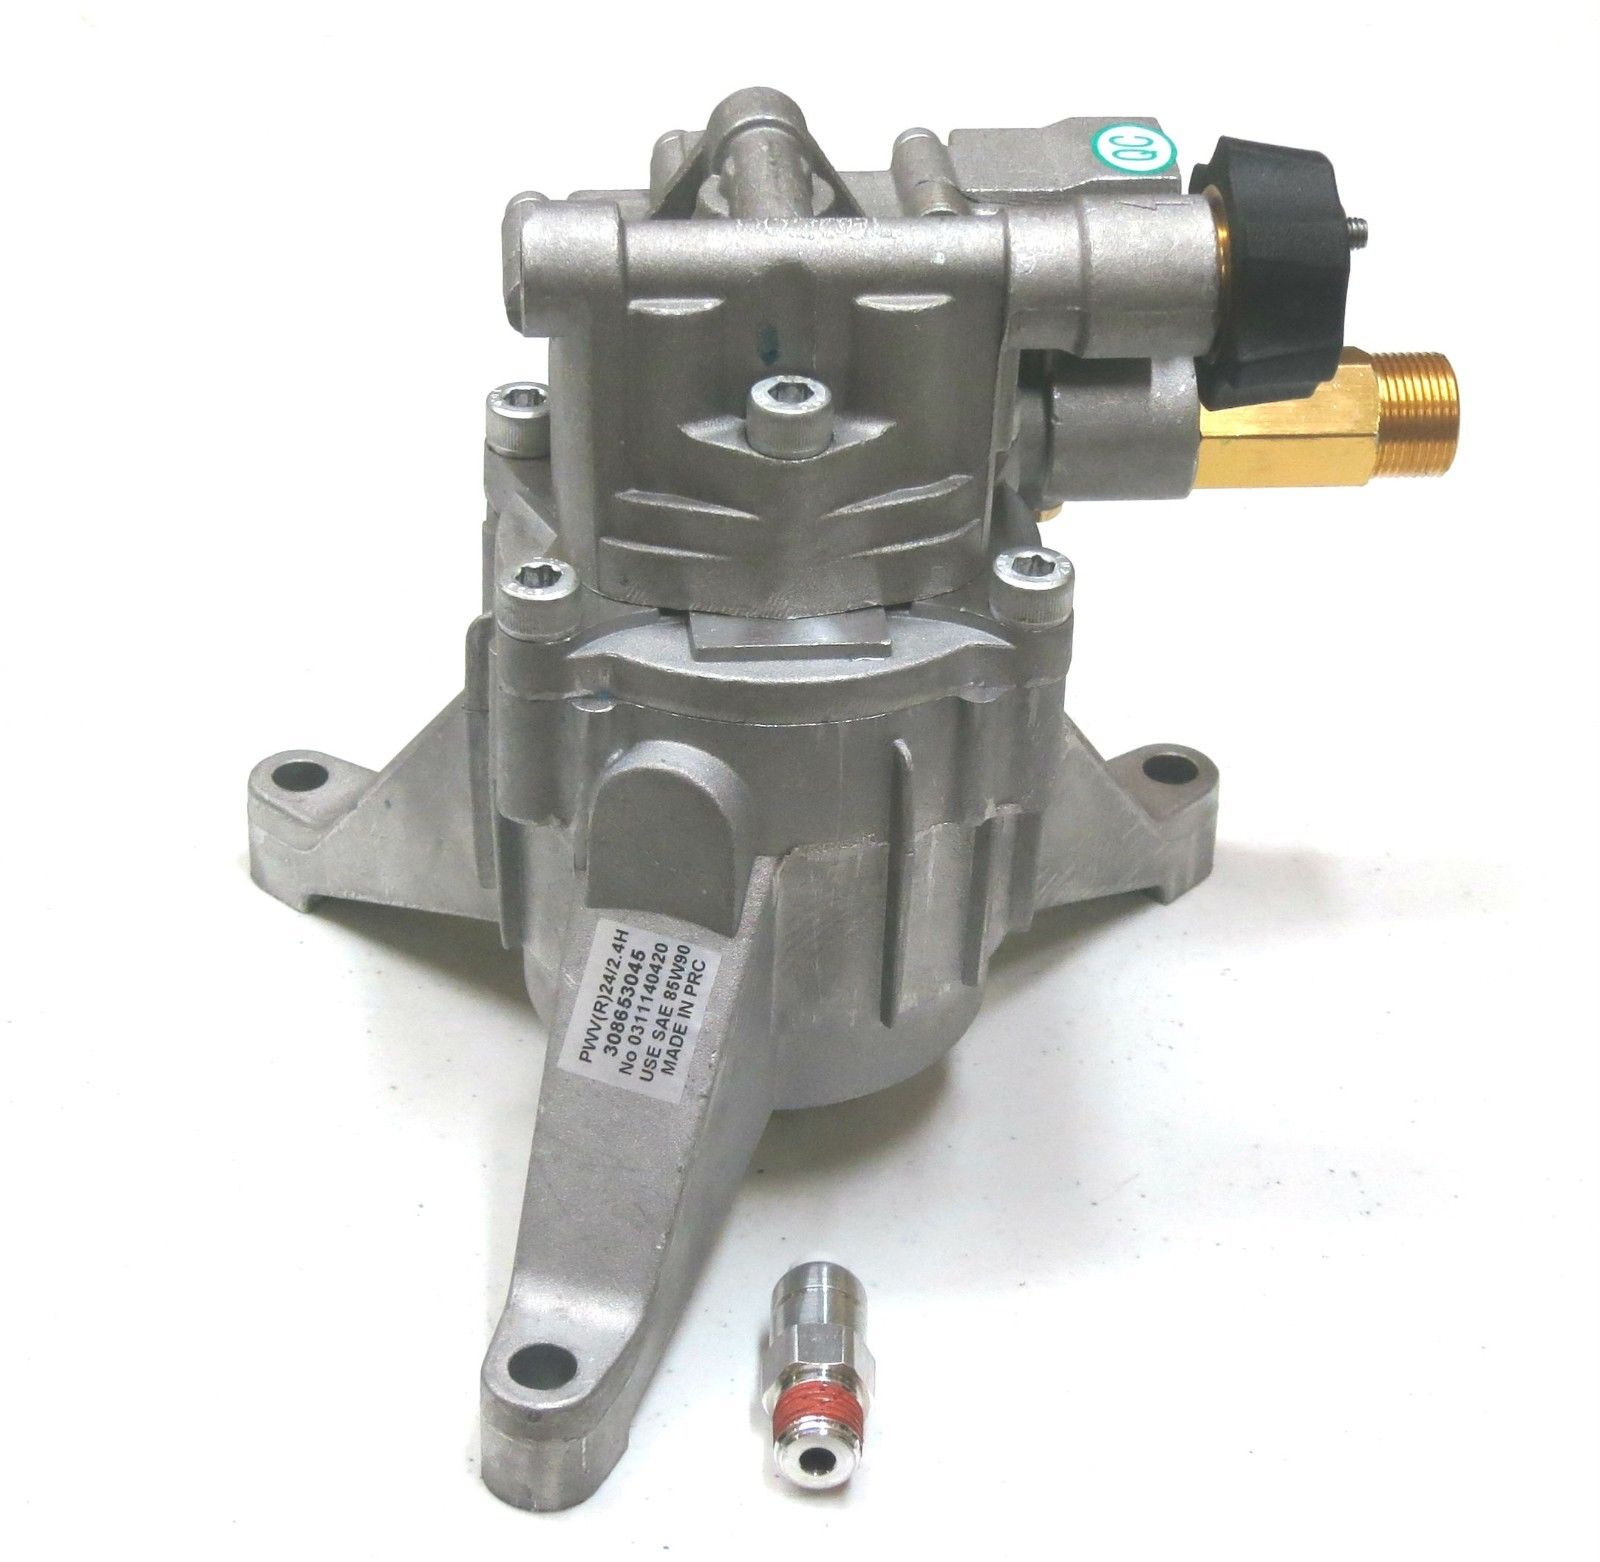 2800 psi POWER PRESSURE WASHER WATER PUMP Brute 020450-1 020346-0 by The ROP Shop